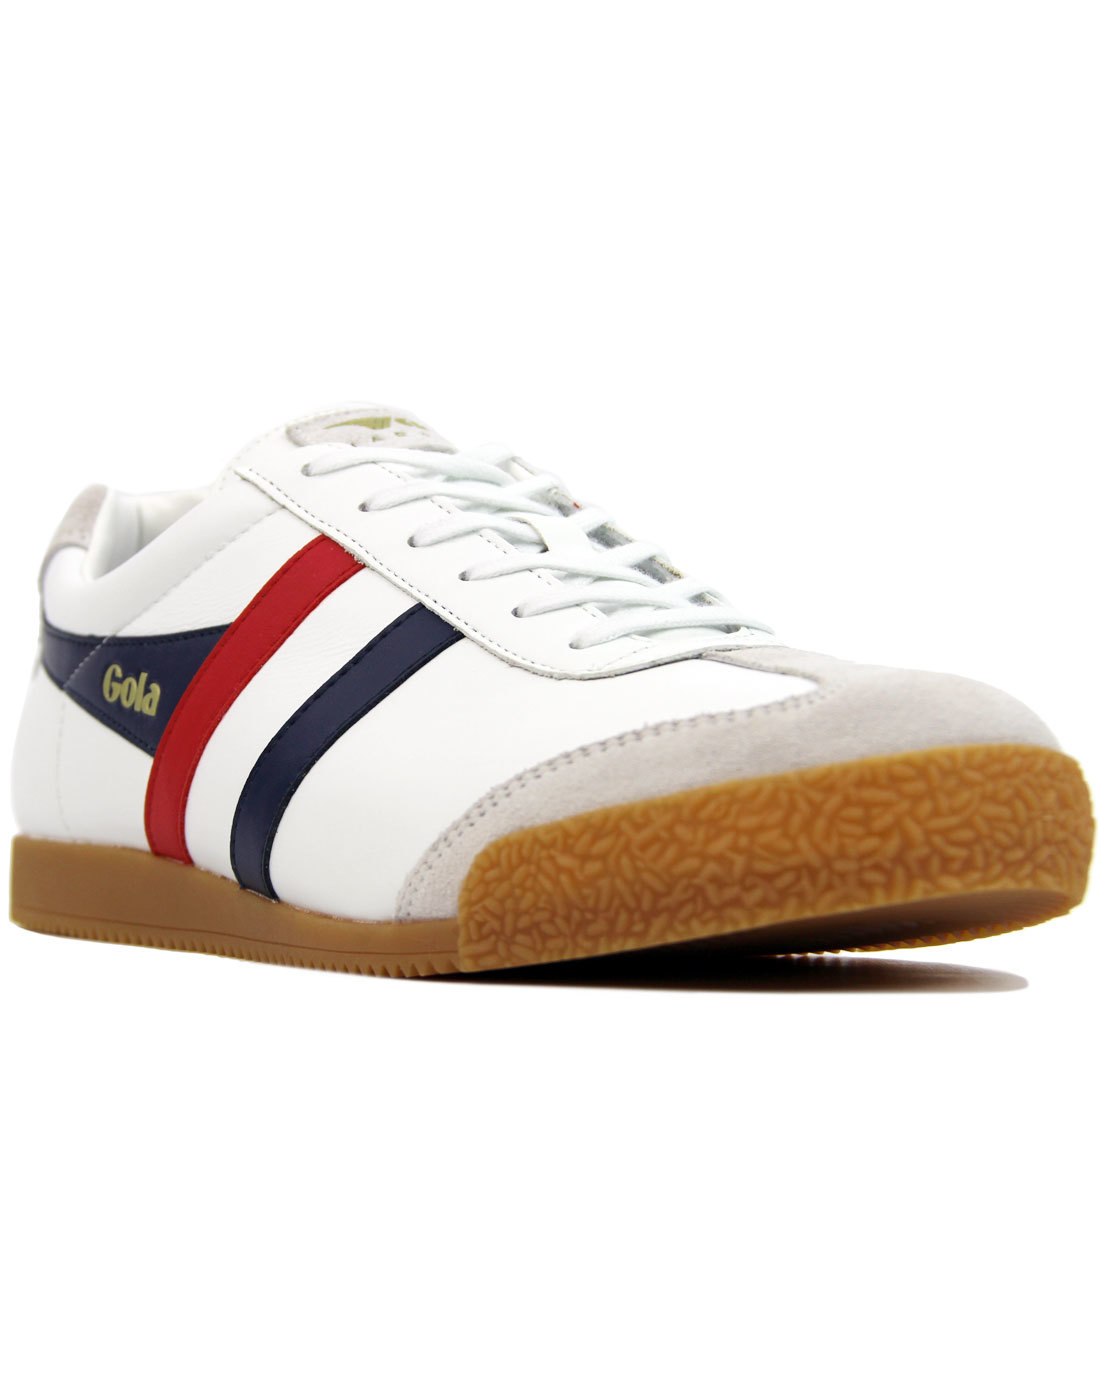 GOLA Harrier Leather Retro Mod Trainers (WHITE)